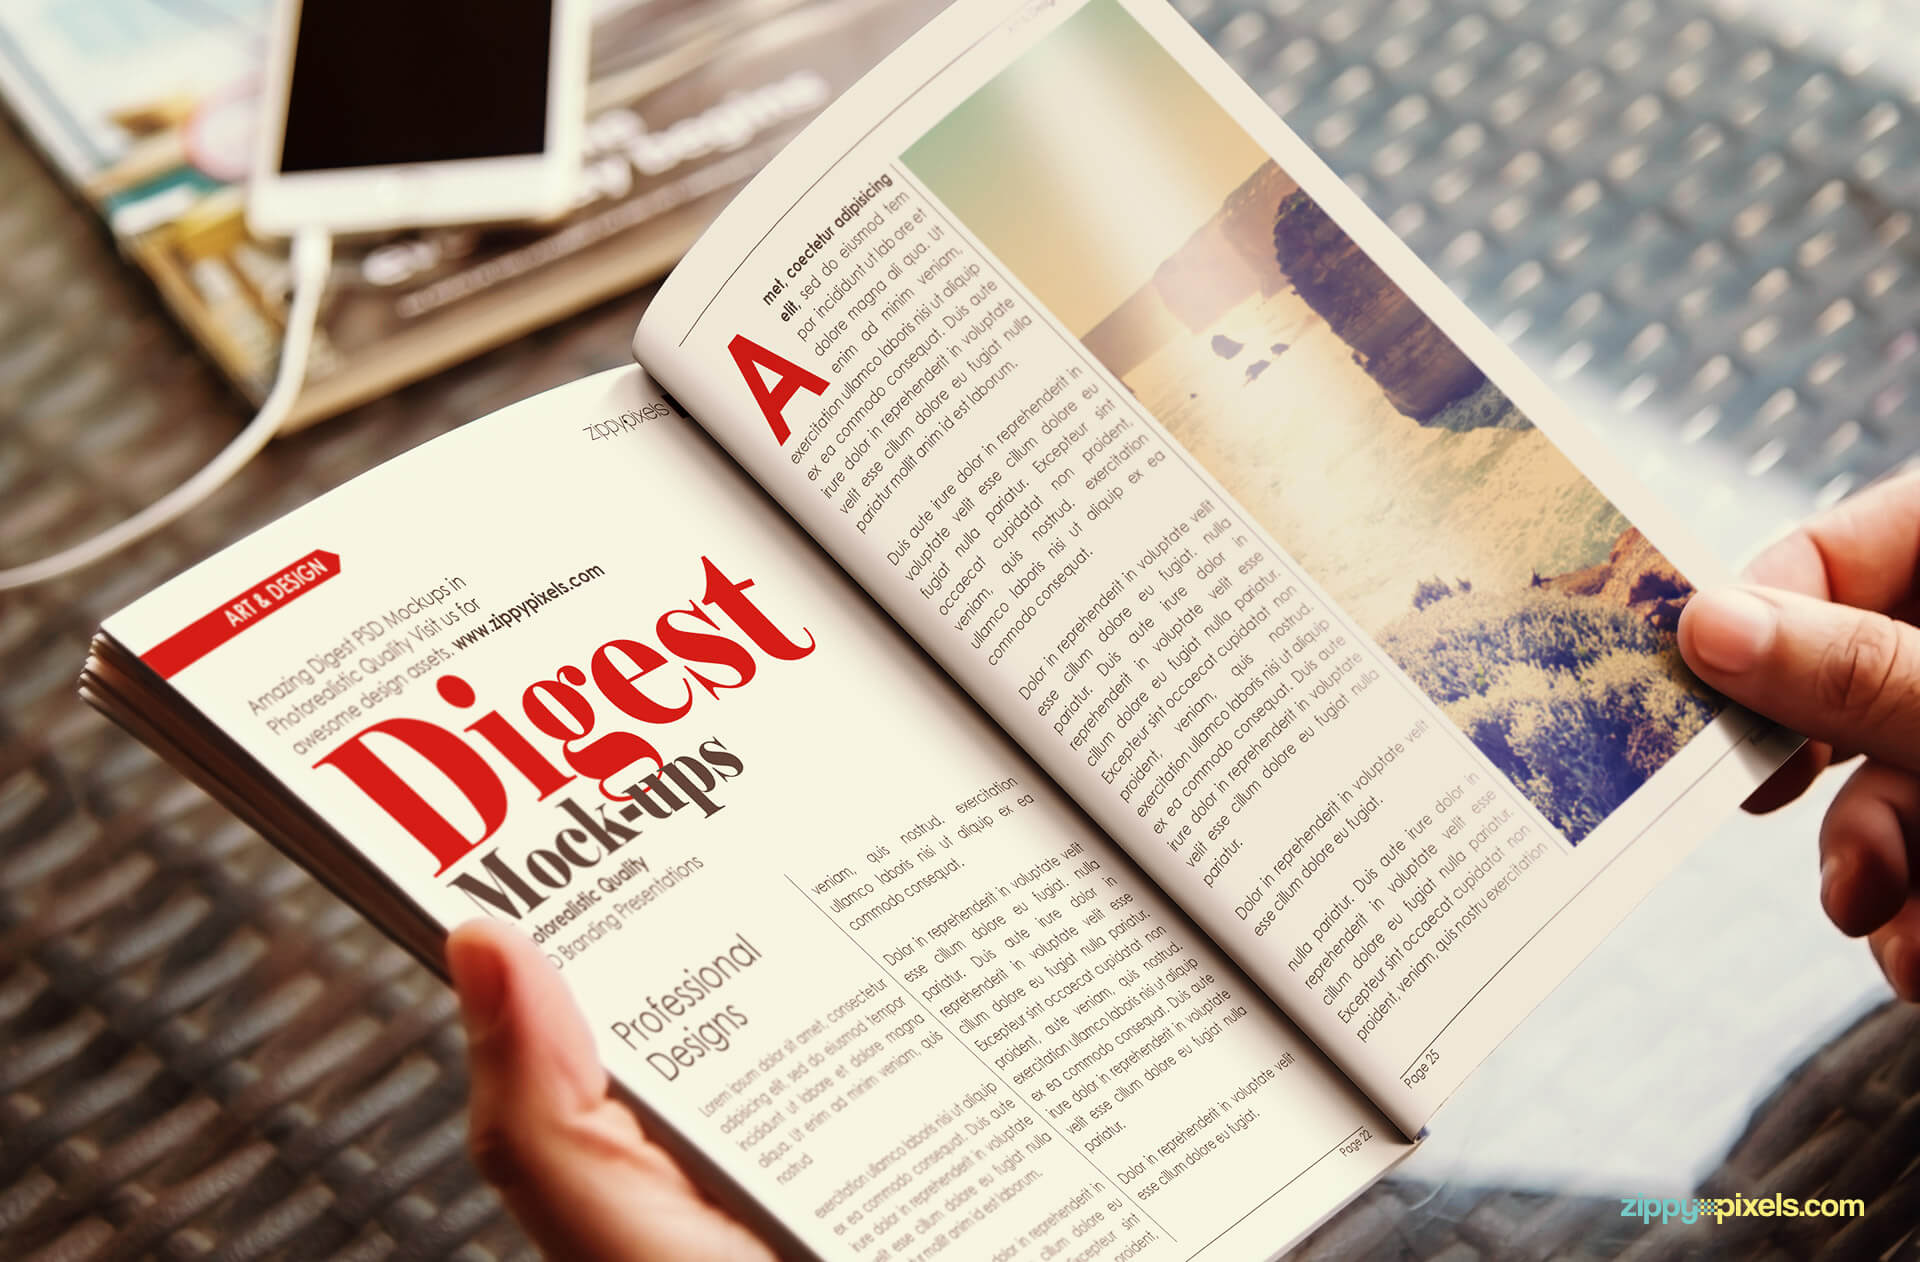 mockup depicting person reading open paperback digest showing inner pages